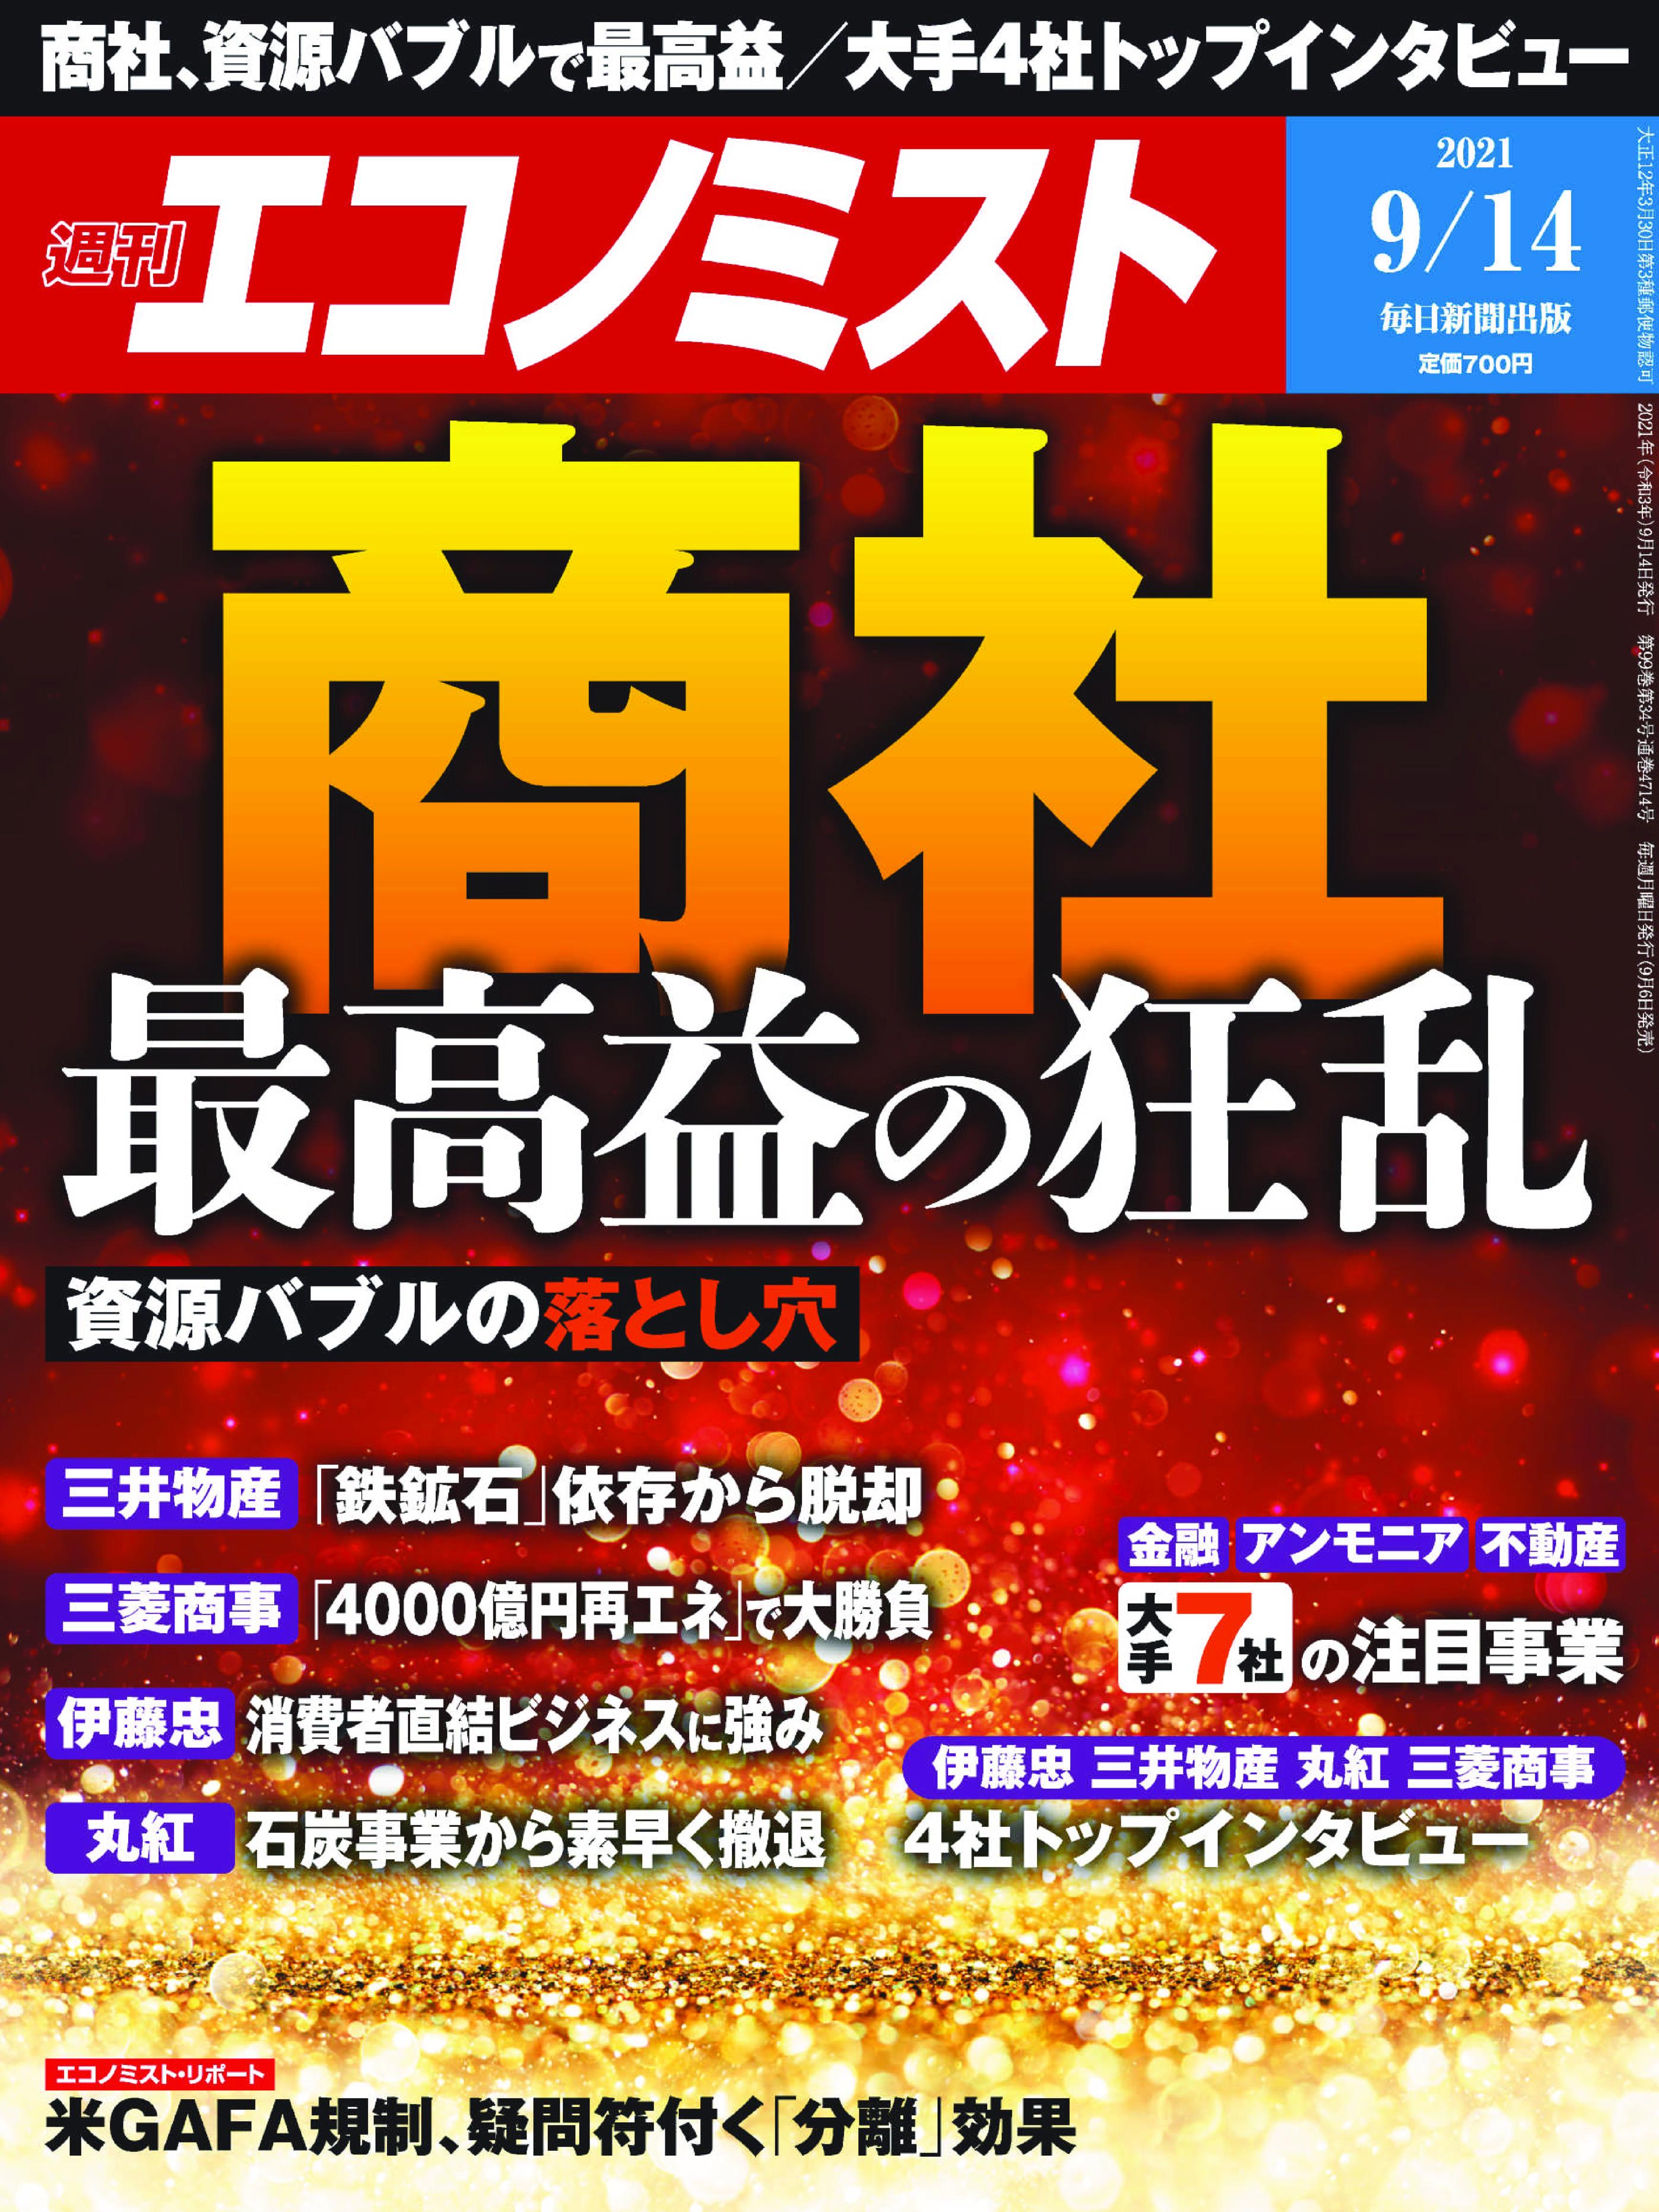 Weekly Economist 週刊エコノミスト – 06 9月 2021